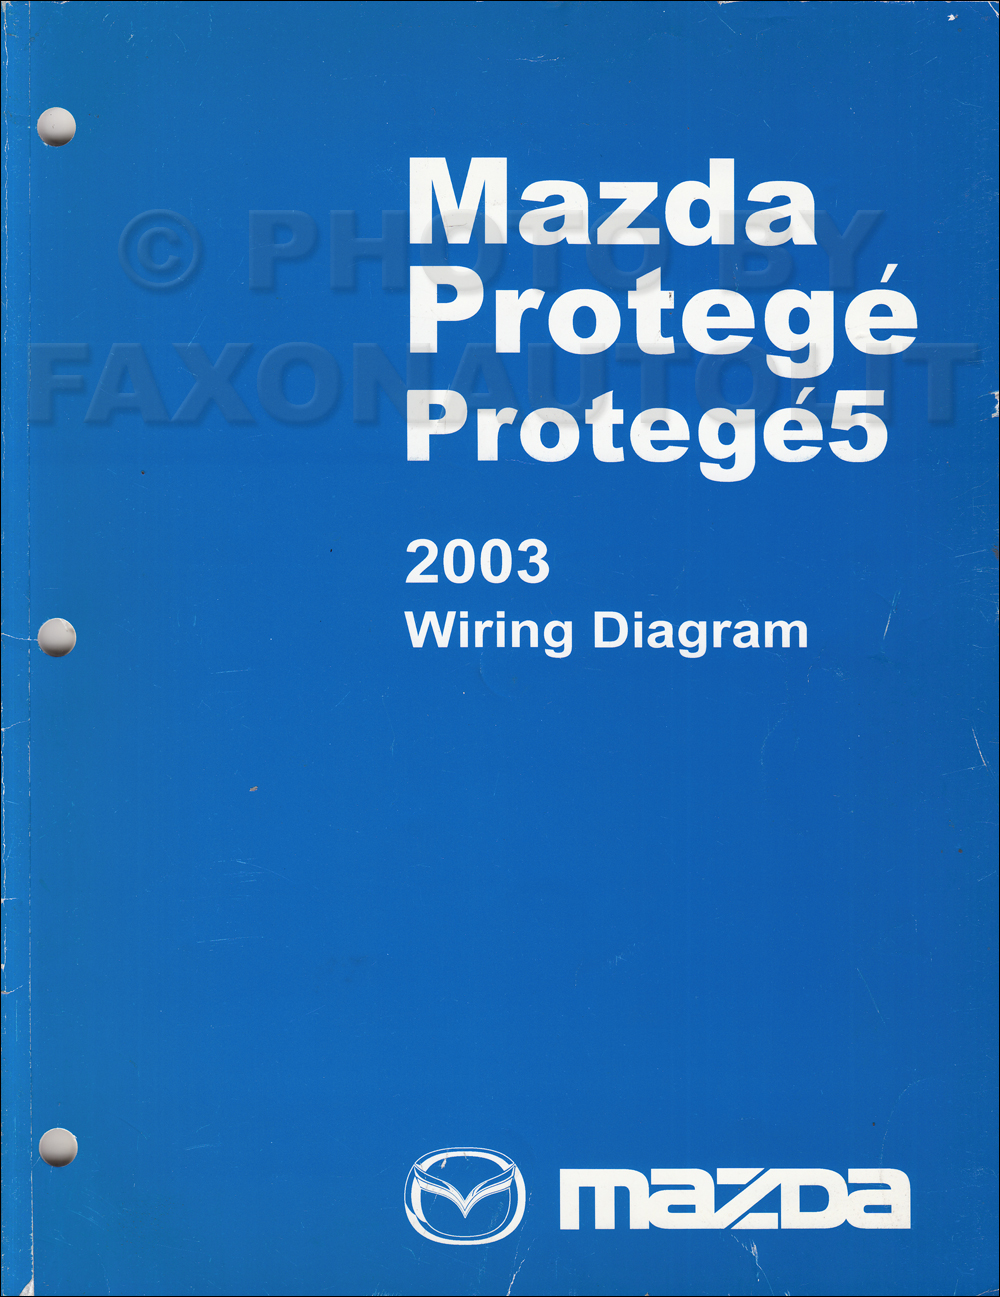 Mazda Protege5 Wiring Diagram Just Another Blog Lexus 2003 Headlight Protege And Manual Original Rh Faxonautoliterature Com Stereo